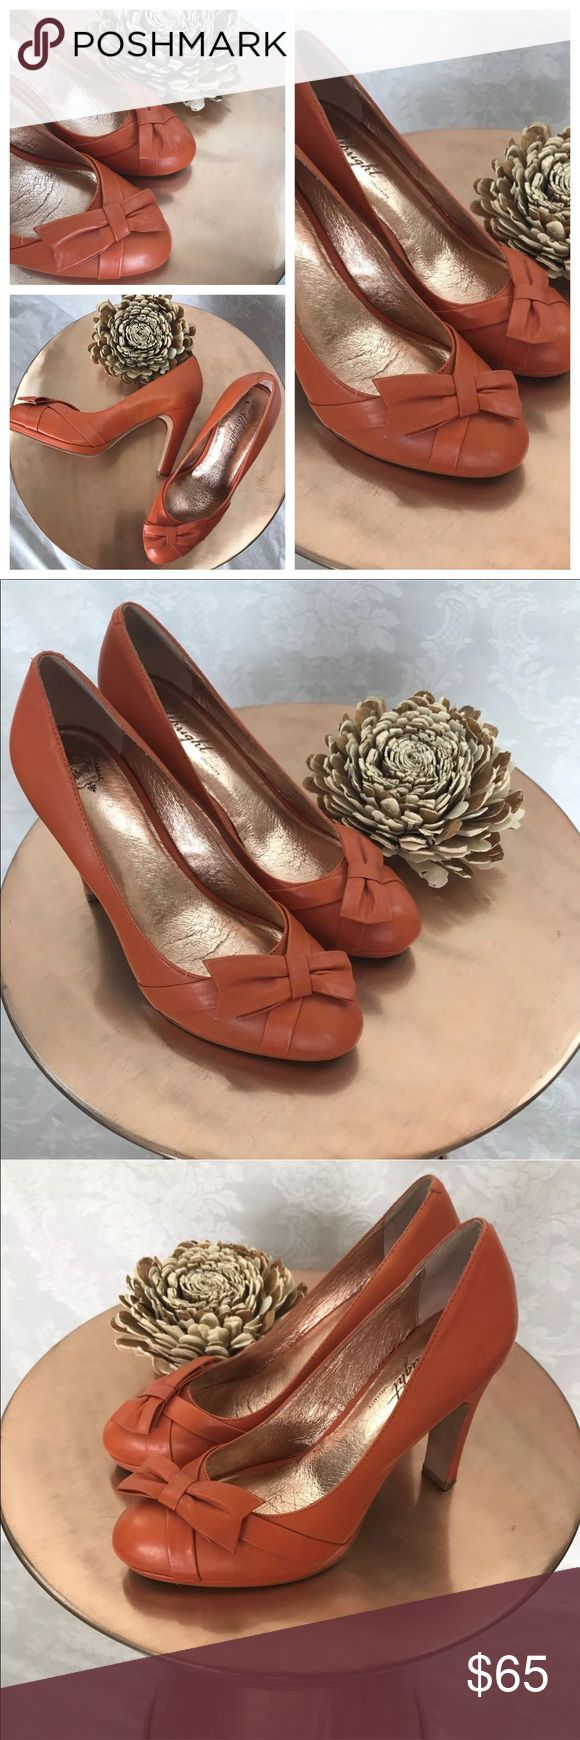 Miss Albright Anthropologie brand heels size 8.5 Miss Albright Anthropologie brand heels very well made leather and up to date trendy style adorable Bow detail at toes    AA22Bag10 Miss Albright Shoes Heels